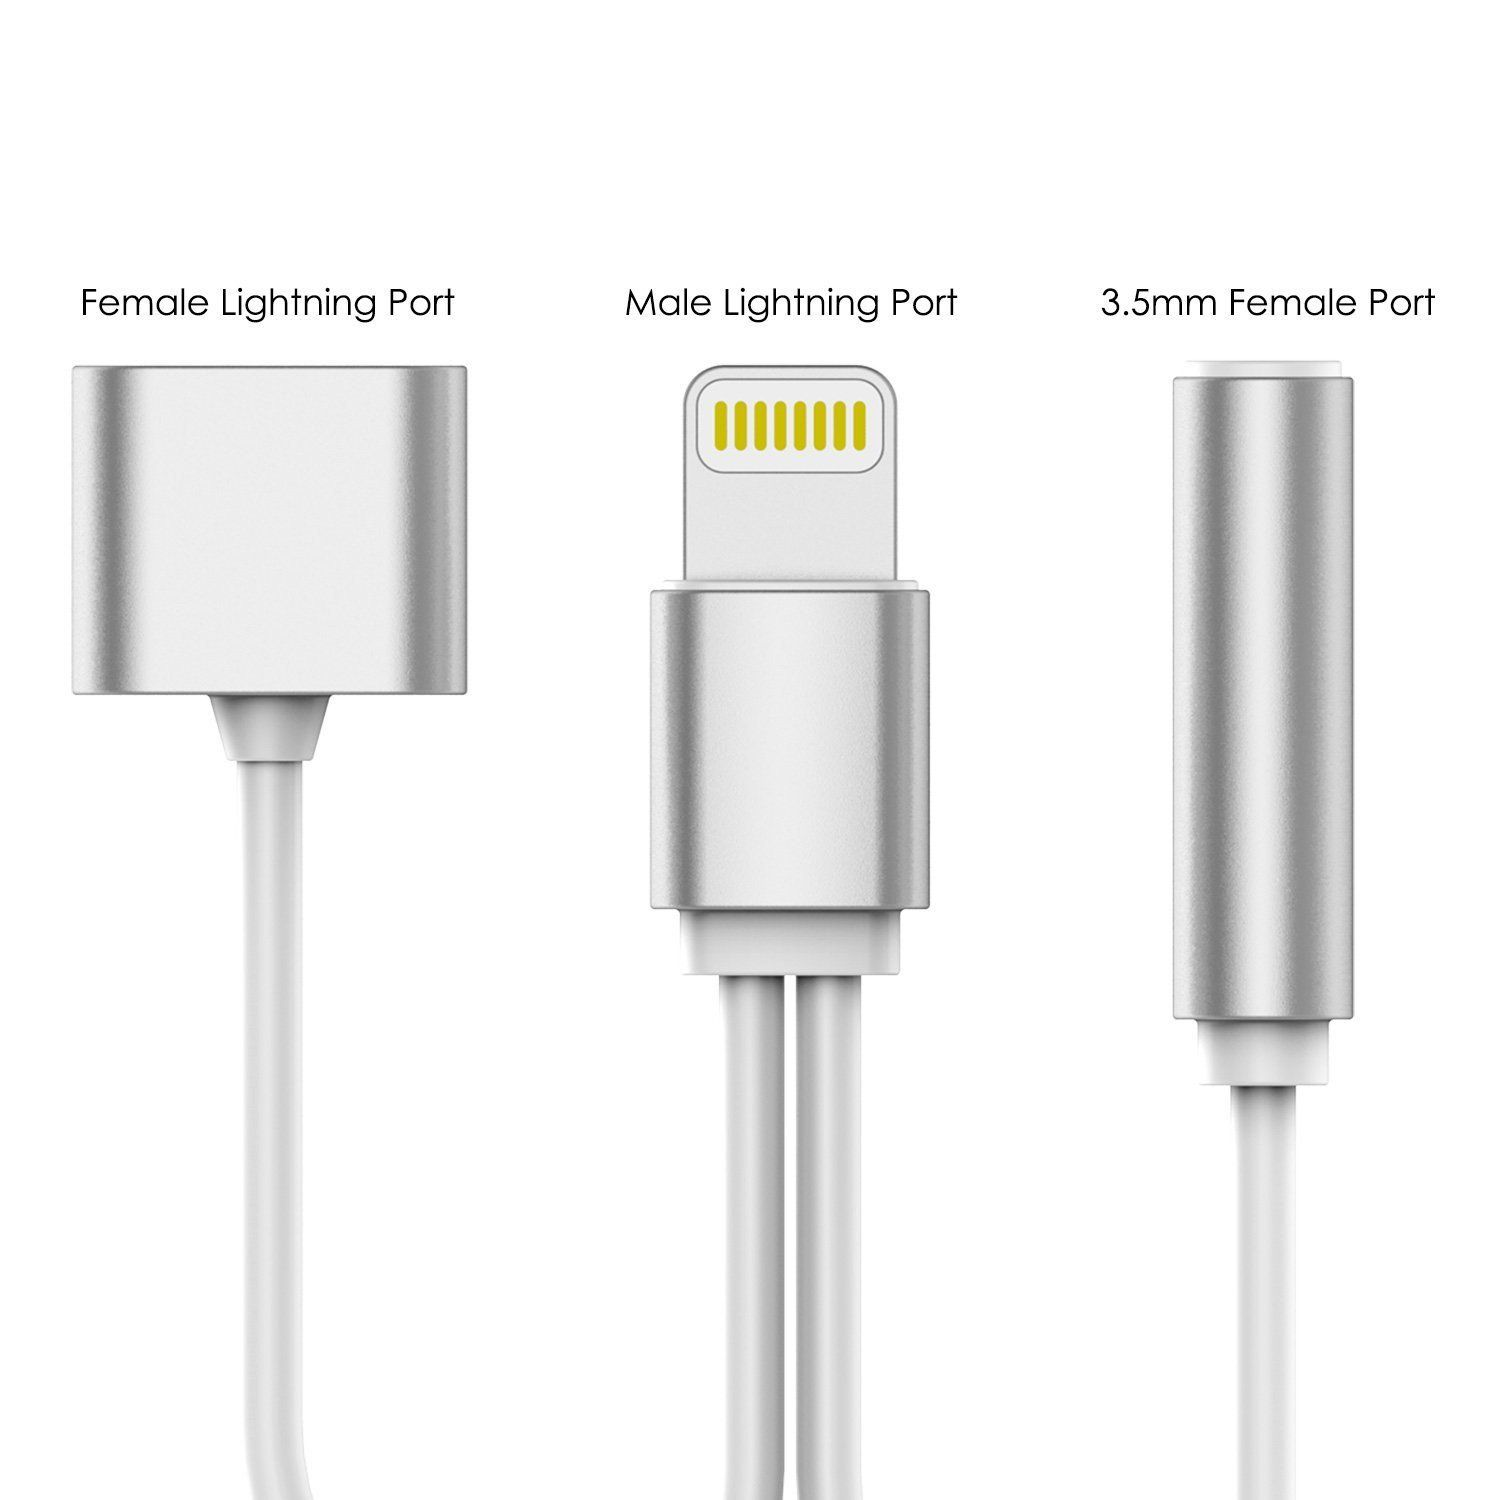 PUNKZAP Lightning Adapter Cable 2 in 1 Splitter Charger with 3.5mm ...